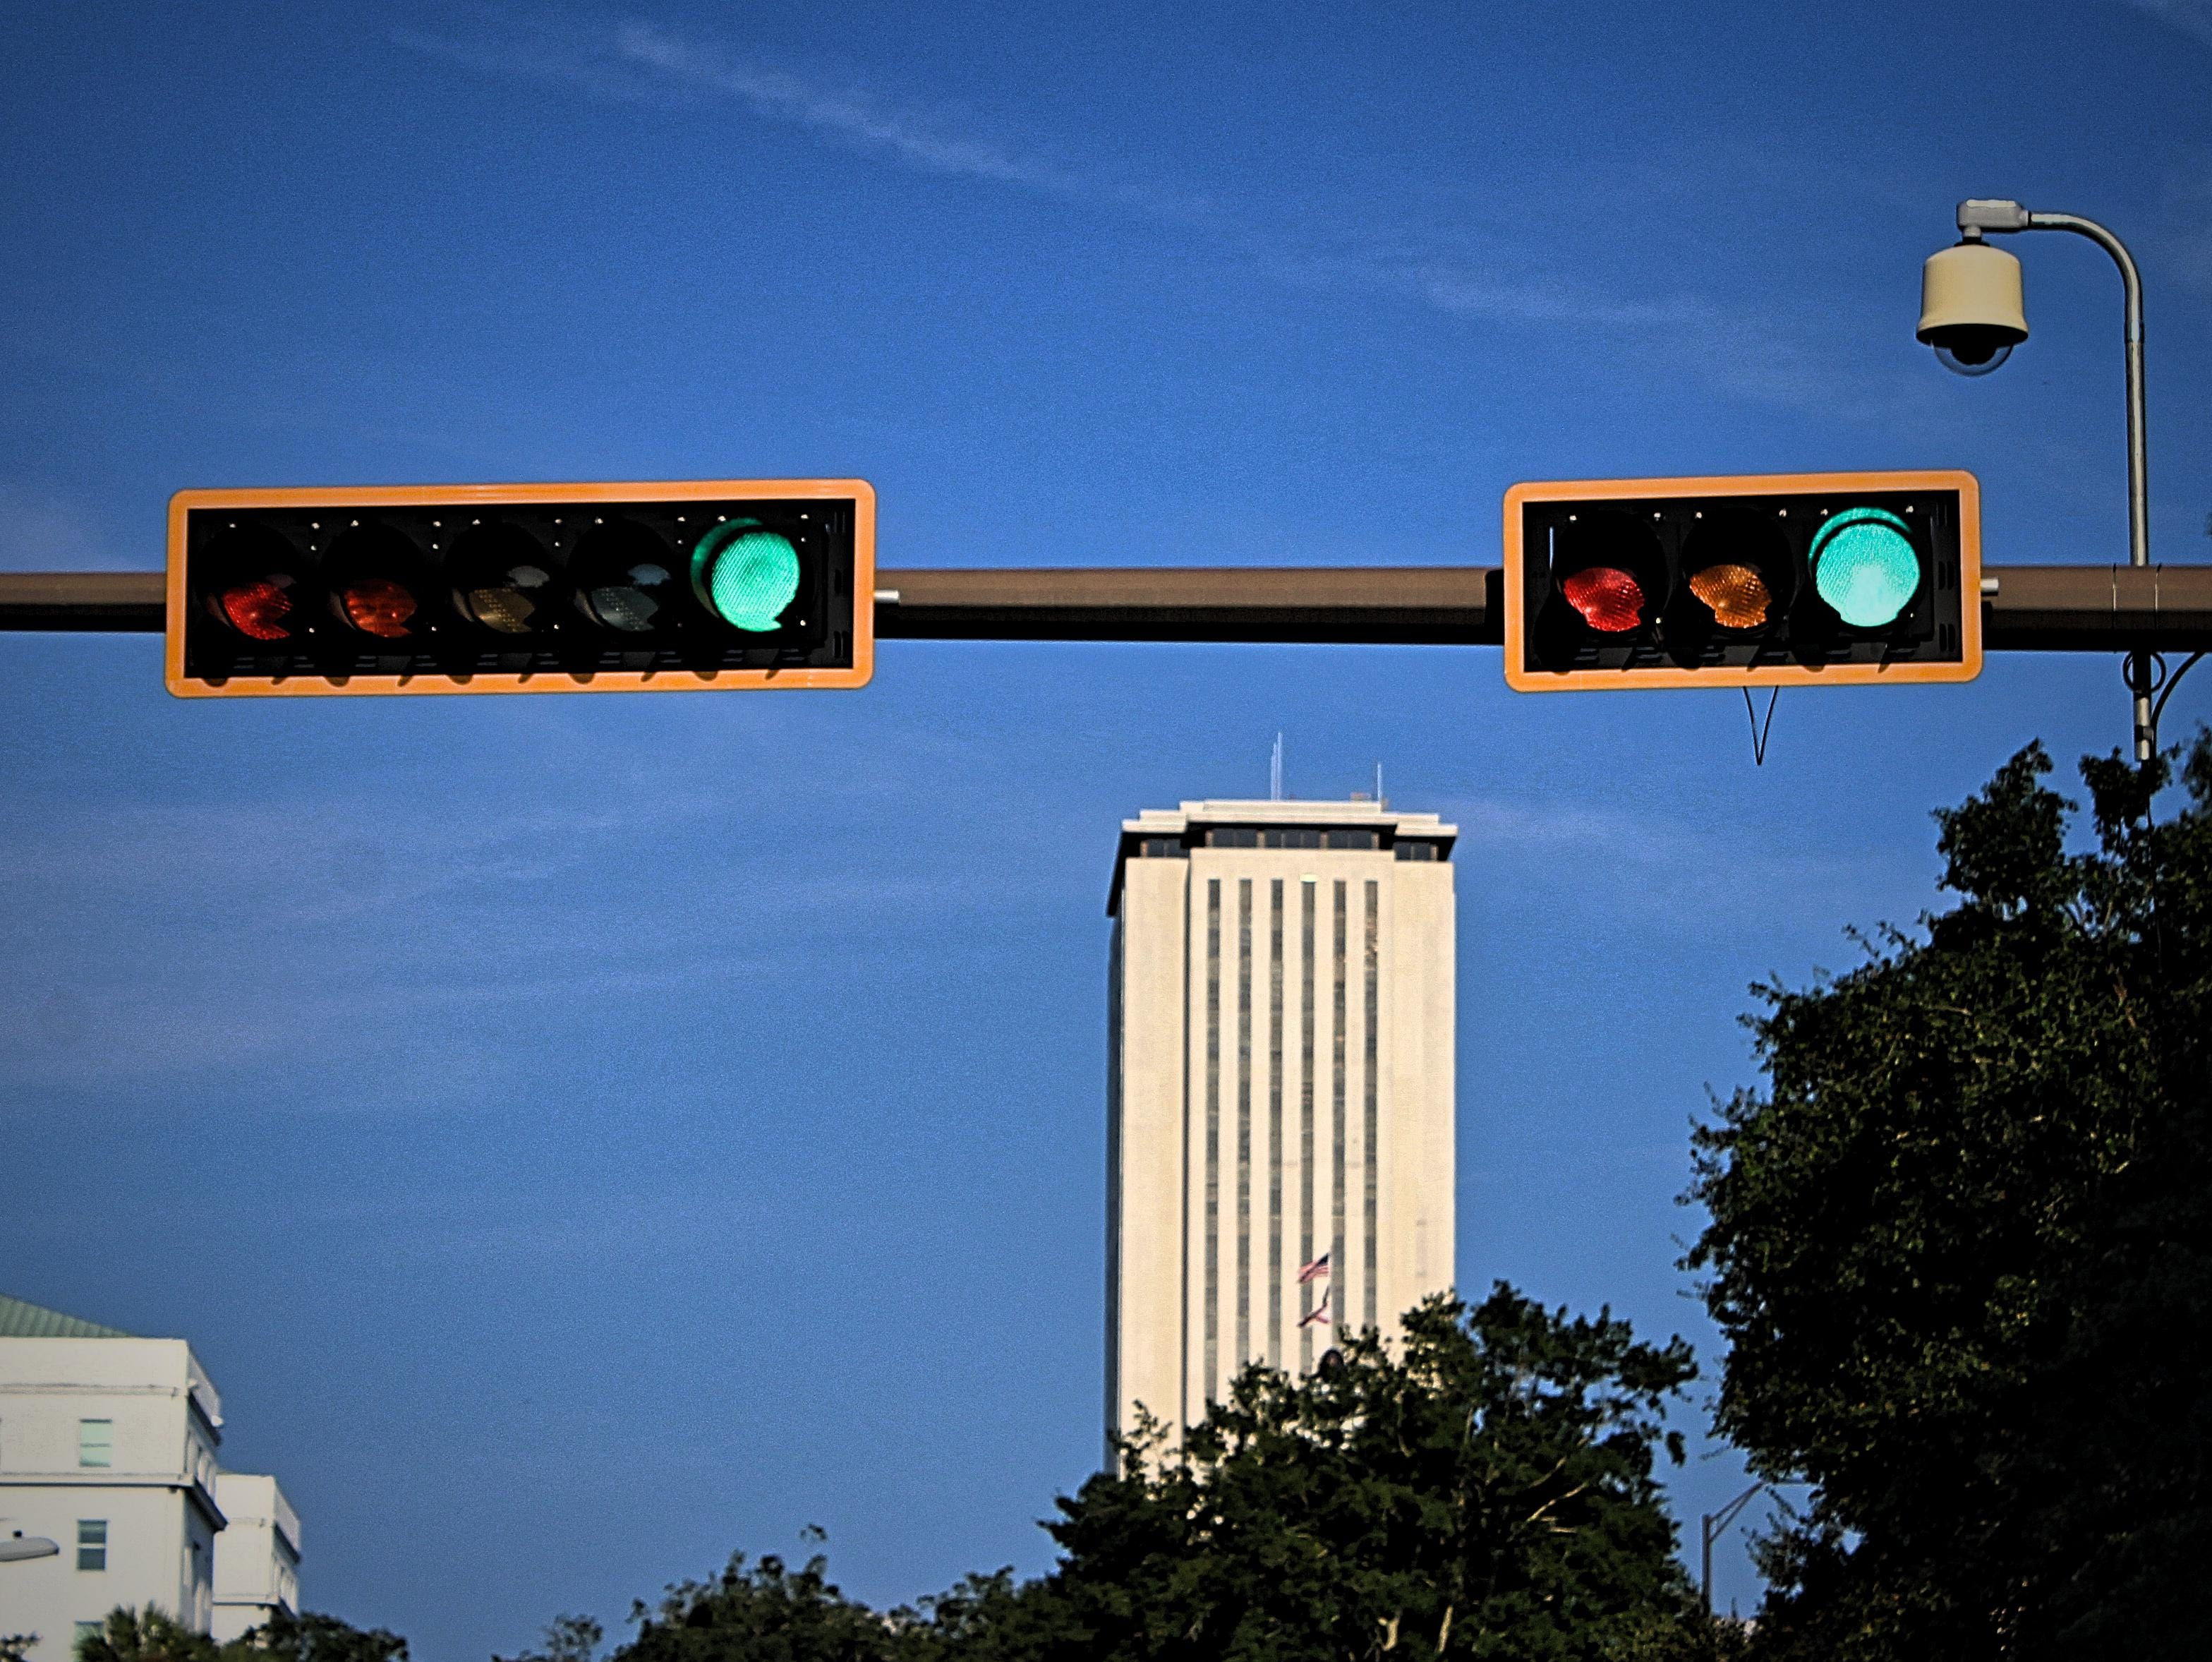 Will there be a green light for change at the capital?